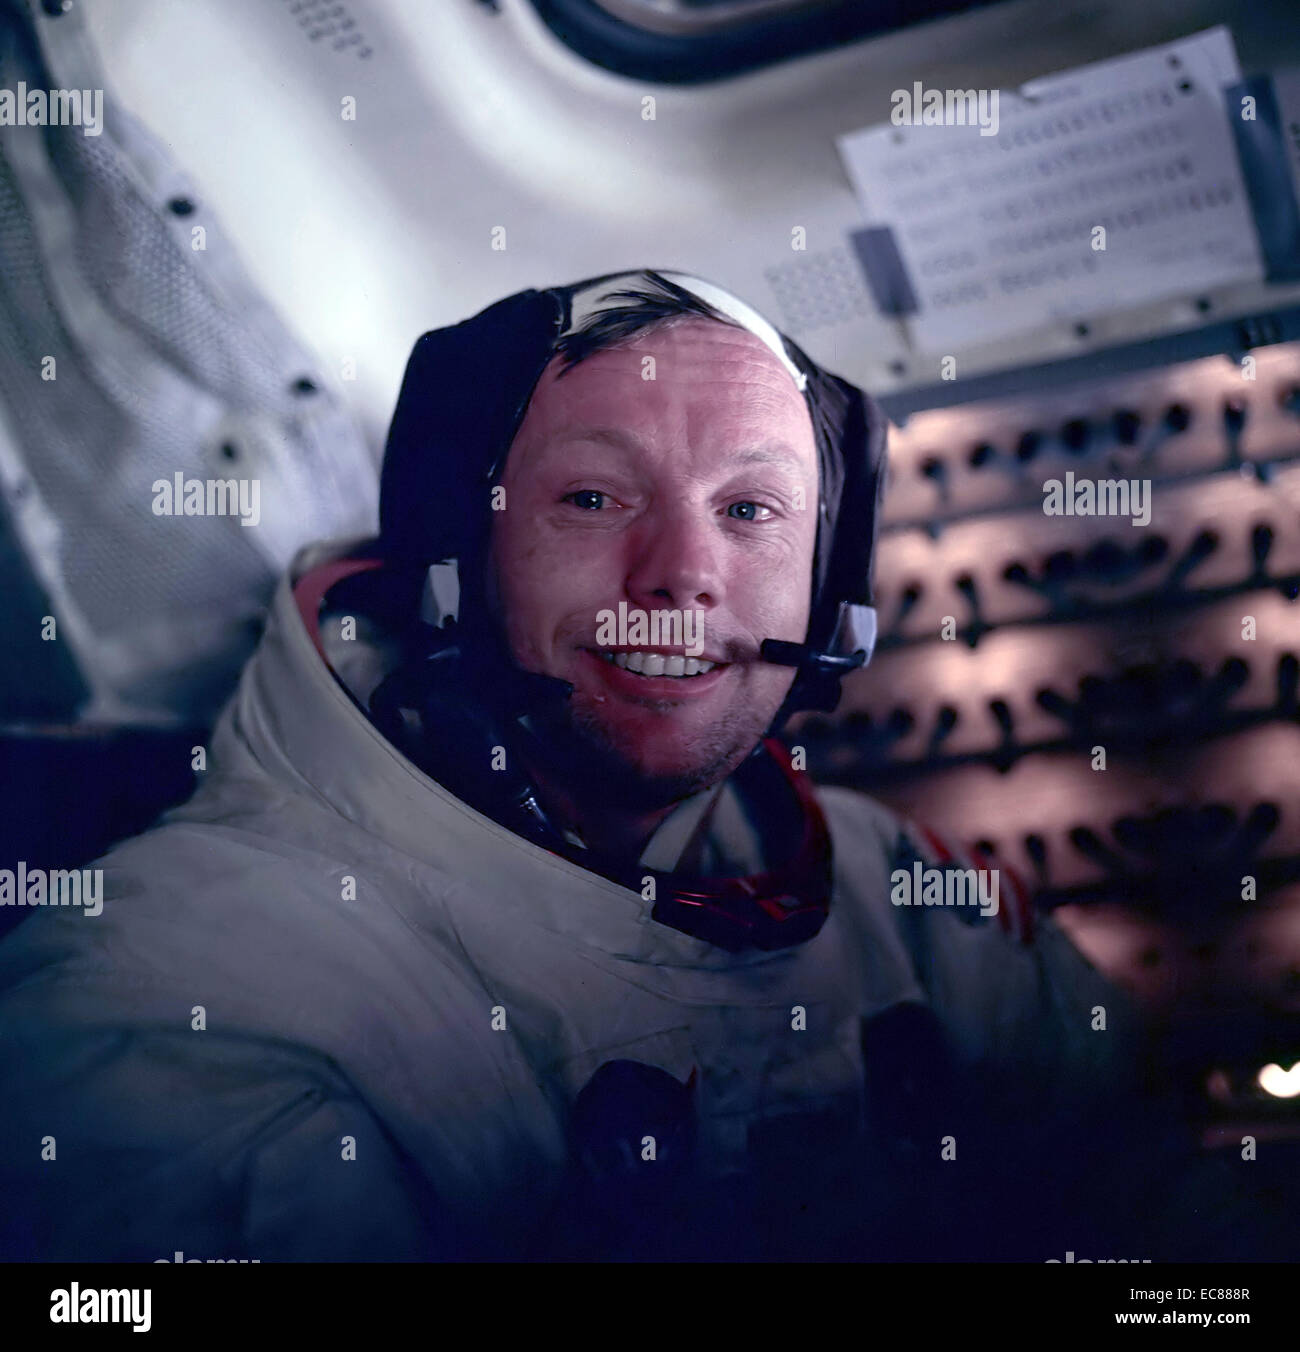 Photograph of Astronaut Neil Armstrong during the Apollo 11 space mission. Dated 1969 Stock Photo